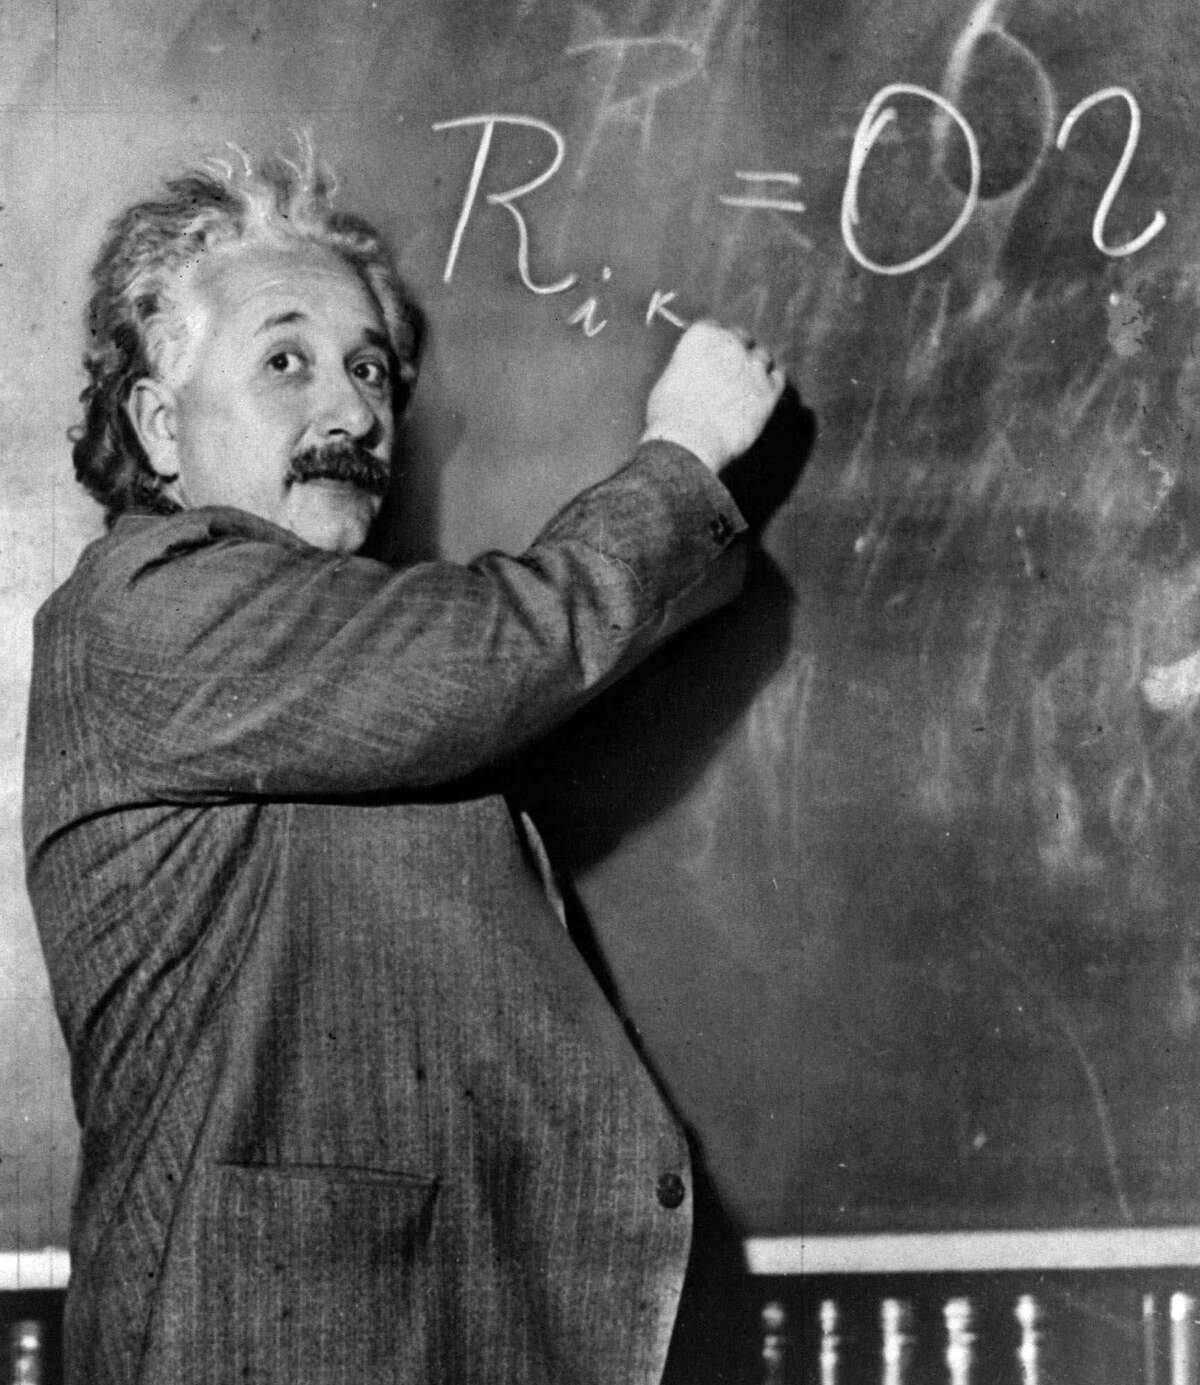 Fishy Before Einstein won the Nobel Prize for physics in 1921 (awarded in 1923) he was nominated nine times. Initially judges said they had difficulty judging relativity, and later some anti-Semitism crept in. He never won for relativity, but for the photoelectric effect.